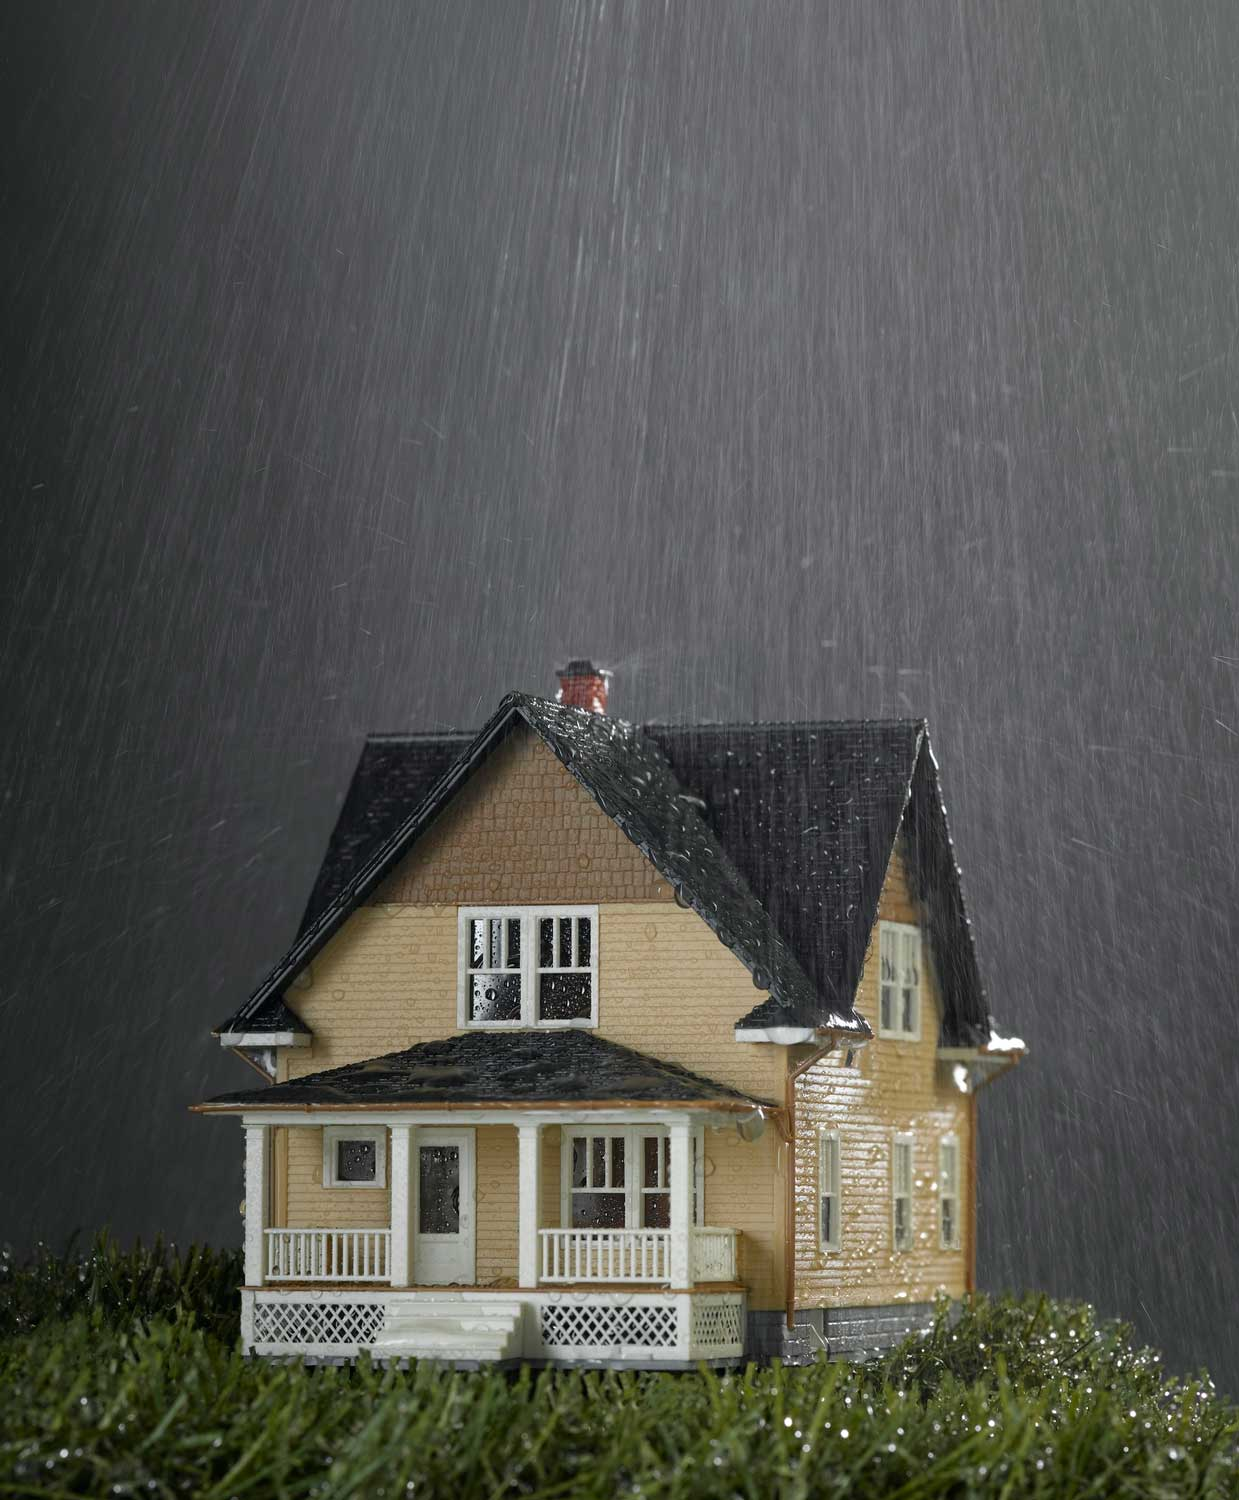 Toy house in rain